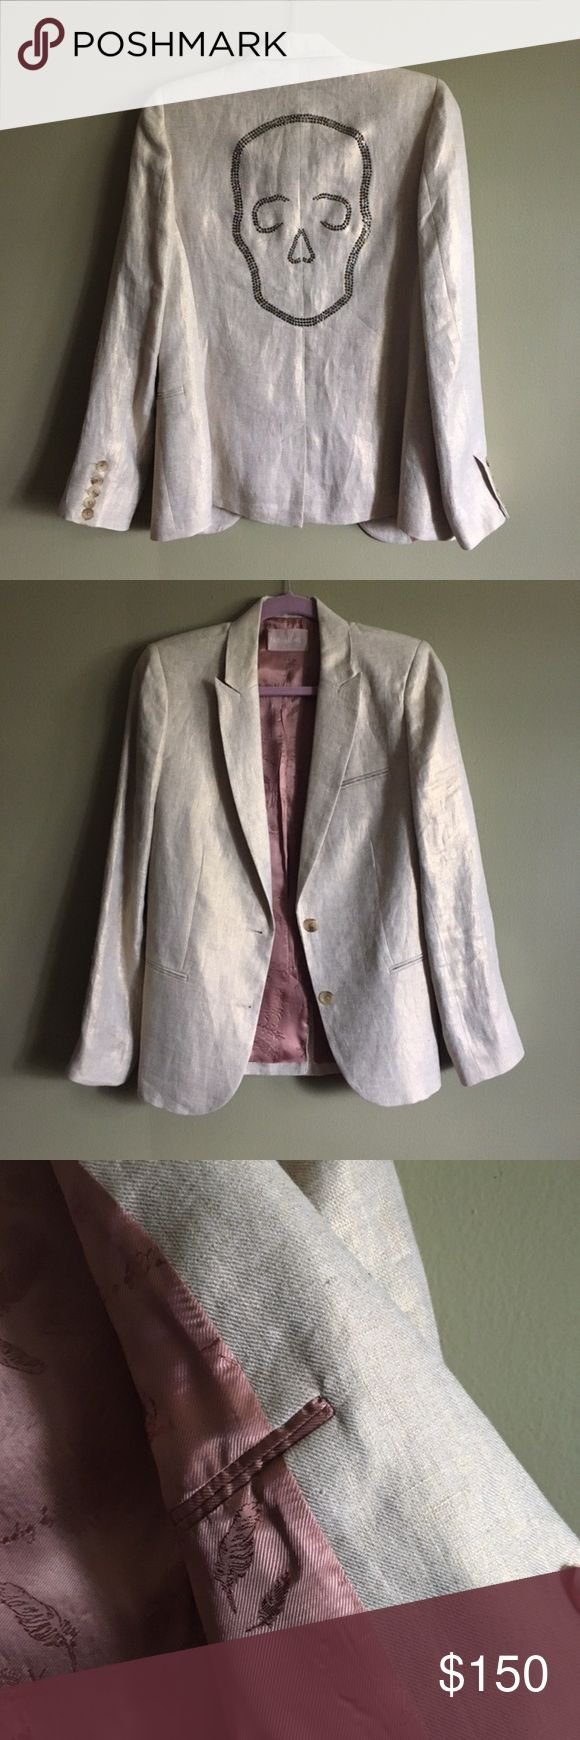 ZADIG & VOLTAIRE Linen Blazer Men's-like tailor jacket with Italian collar, 100% linen with gold tread. Skull diamond stone detail on back. Has just one, barely visible stone missing. Only worn once. Zadig & Voltaire Jackets & Coats Blazers